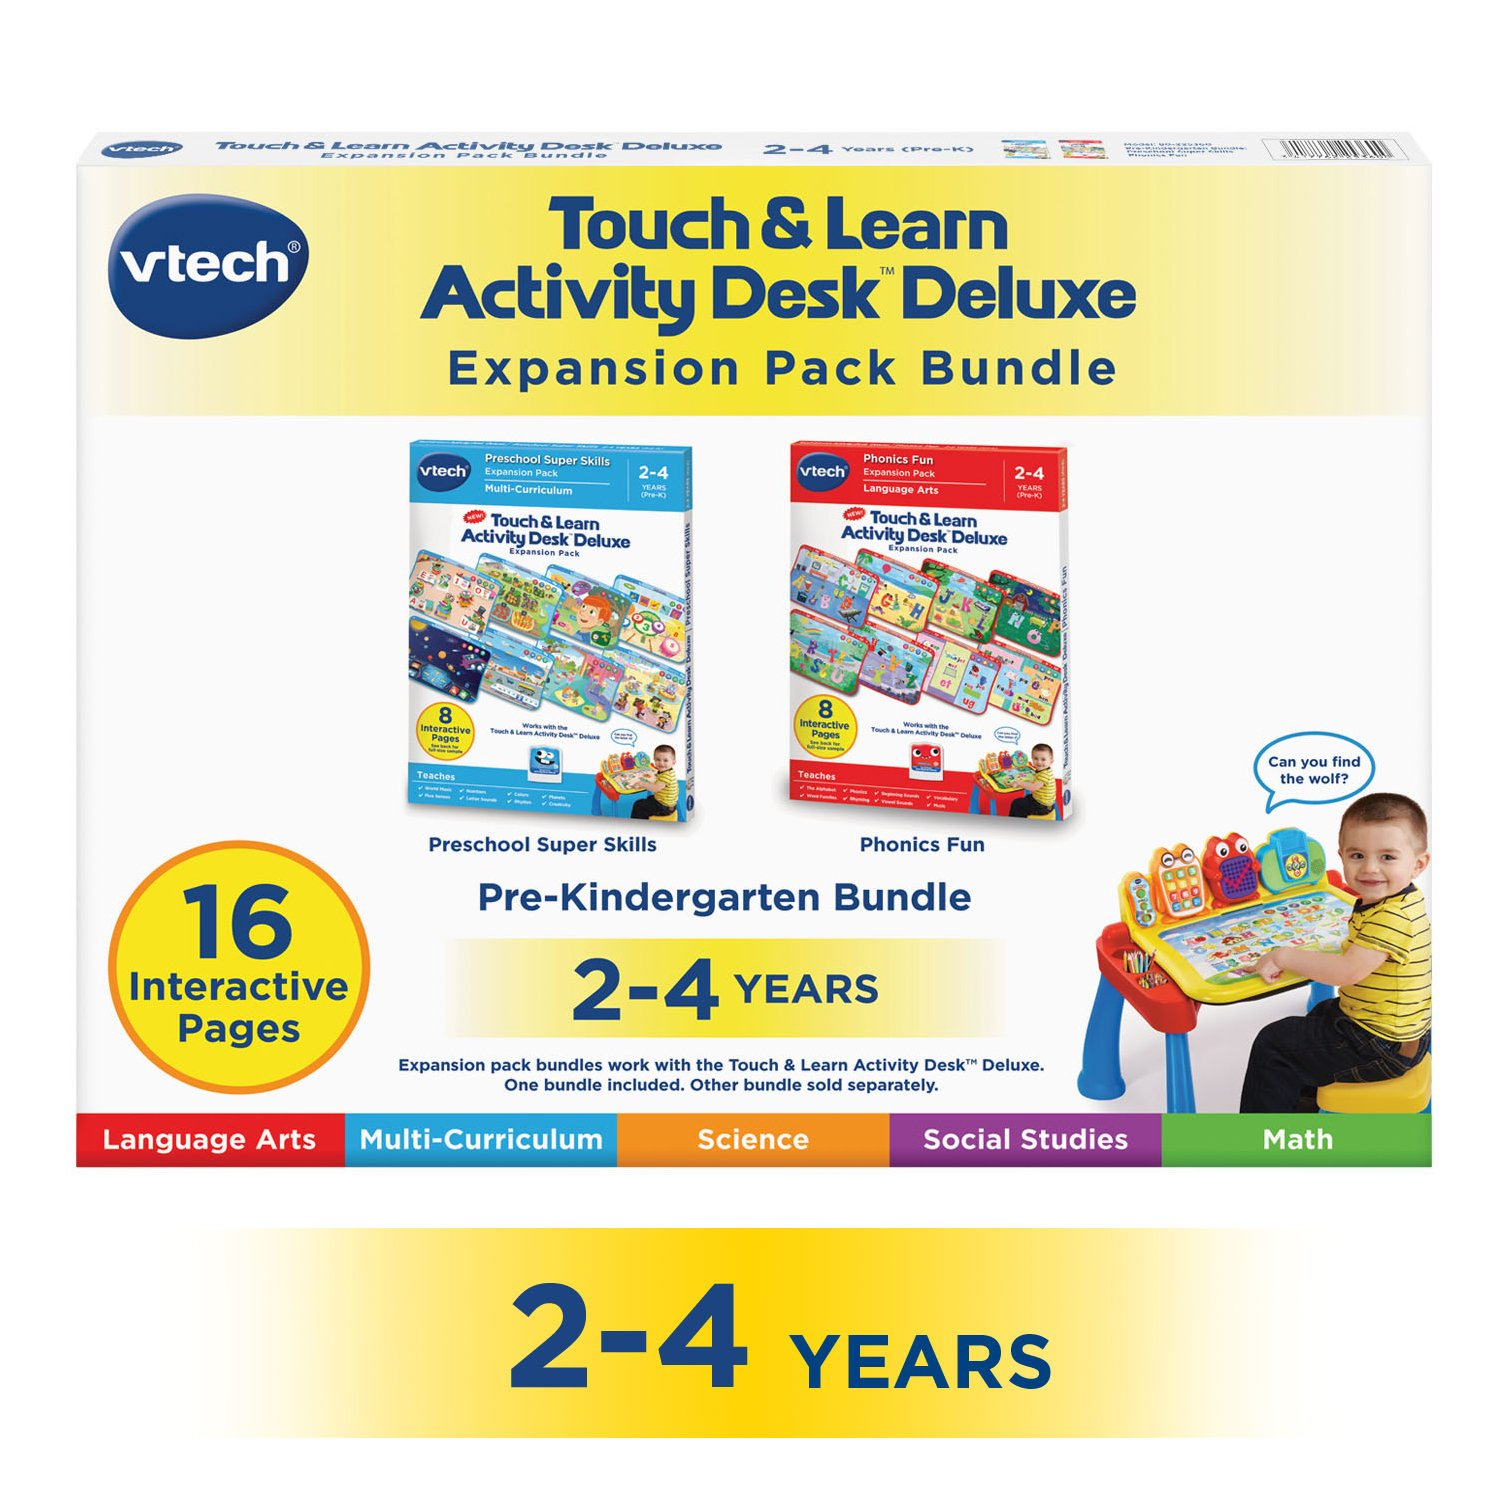 VTech Touch & Learn Activity Desk Deluxe 2-in-1 Preschool Bundle Expansion Pack for Age 2-4 by VTech